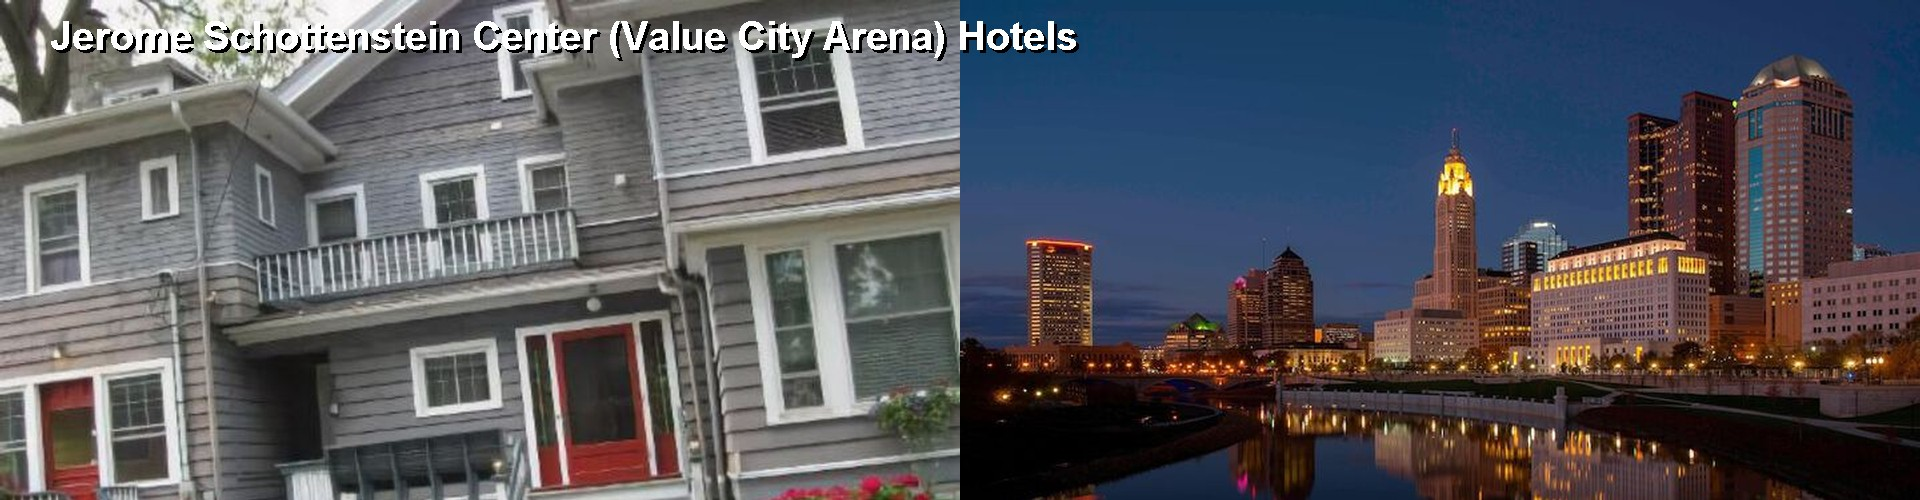 5 Best Hotels near Jerome Schottenstein Center (Value City Arena)